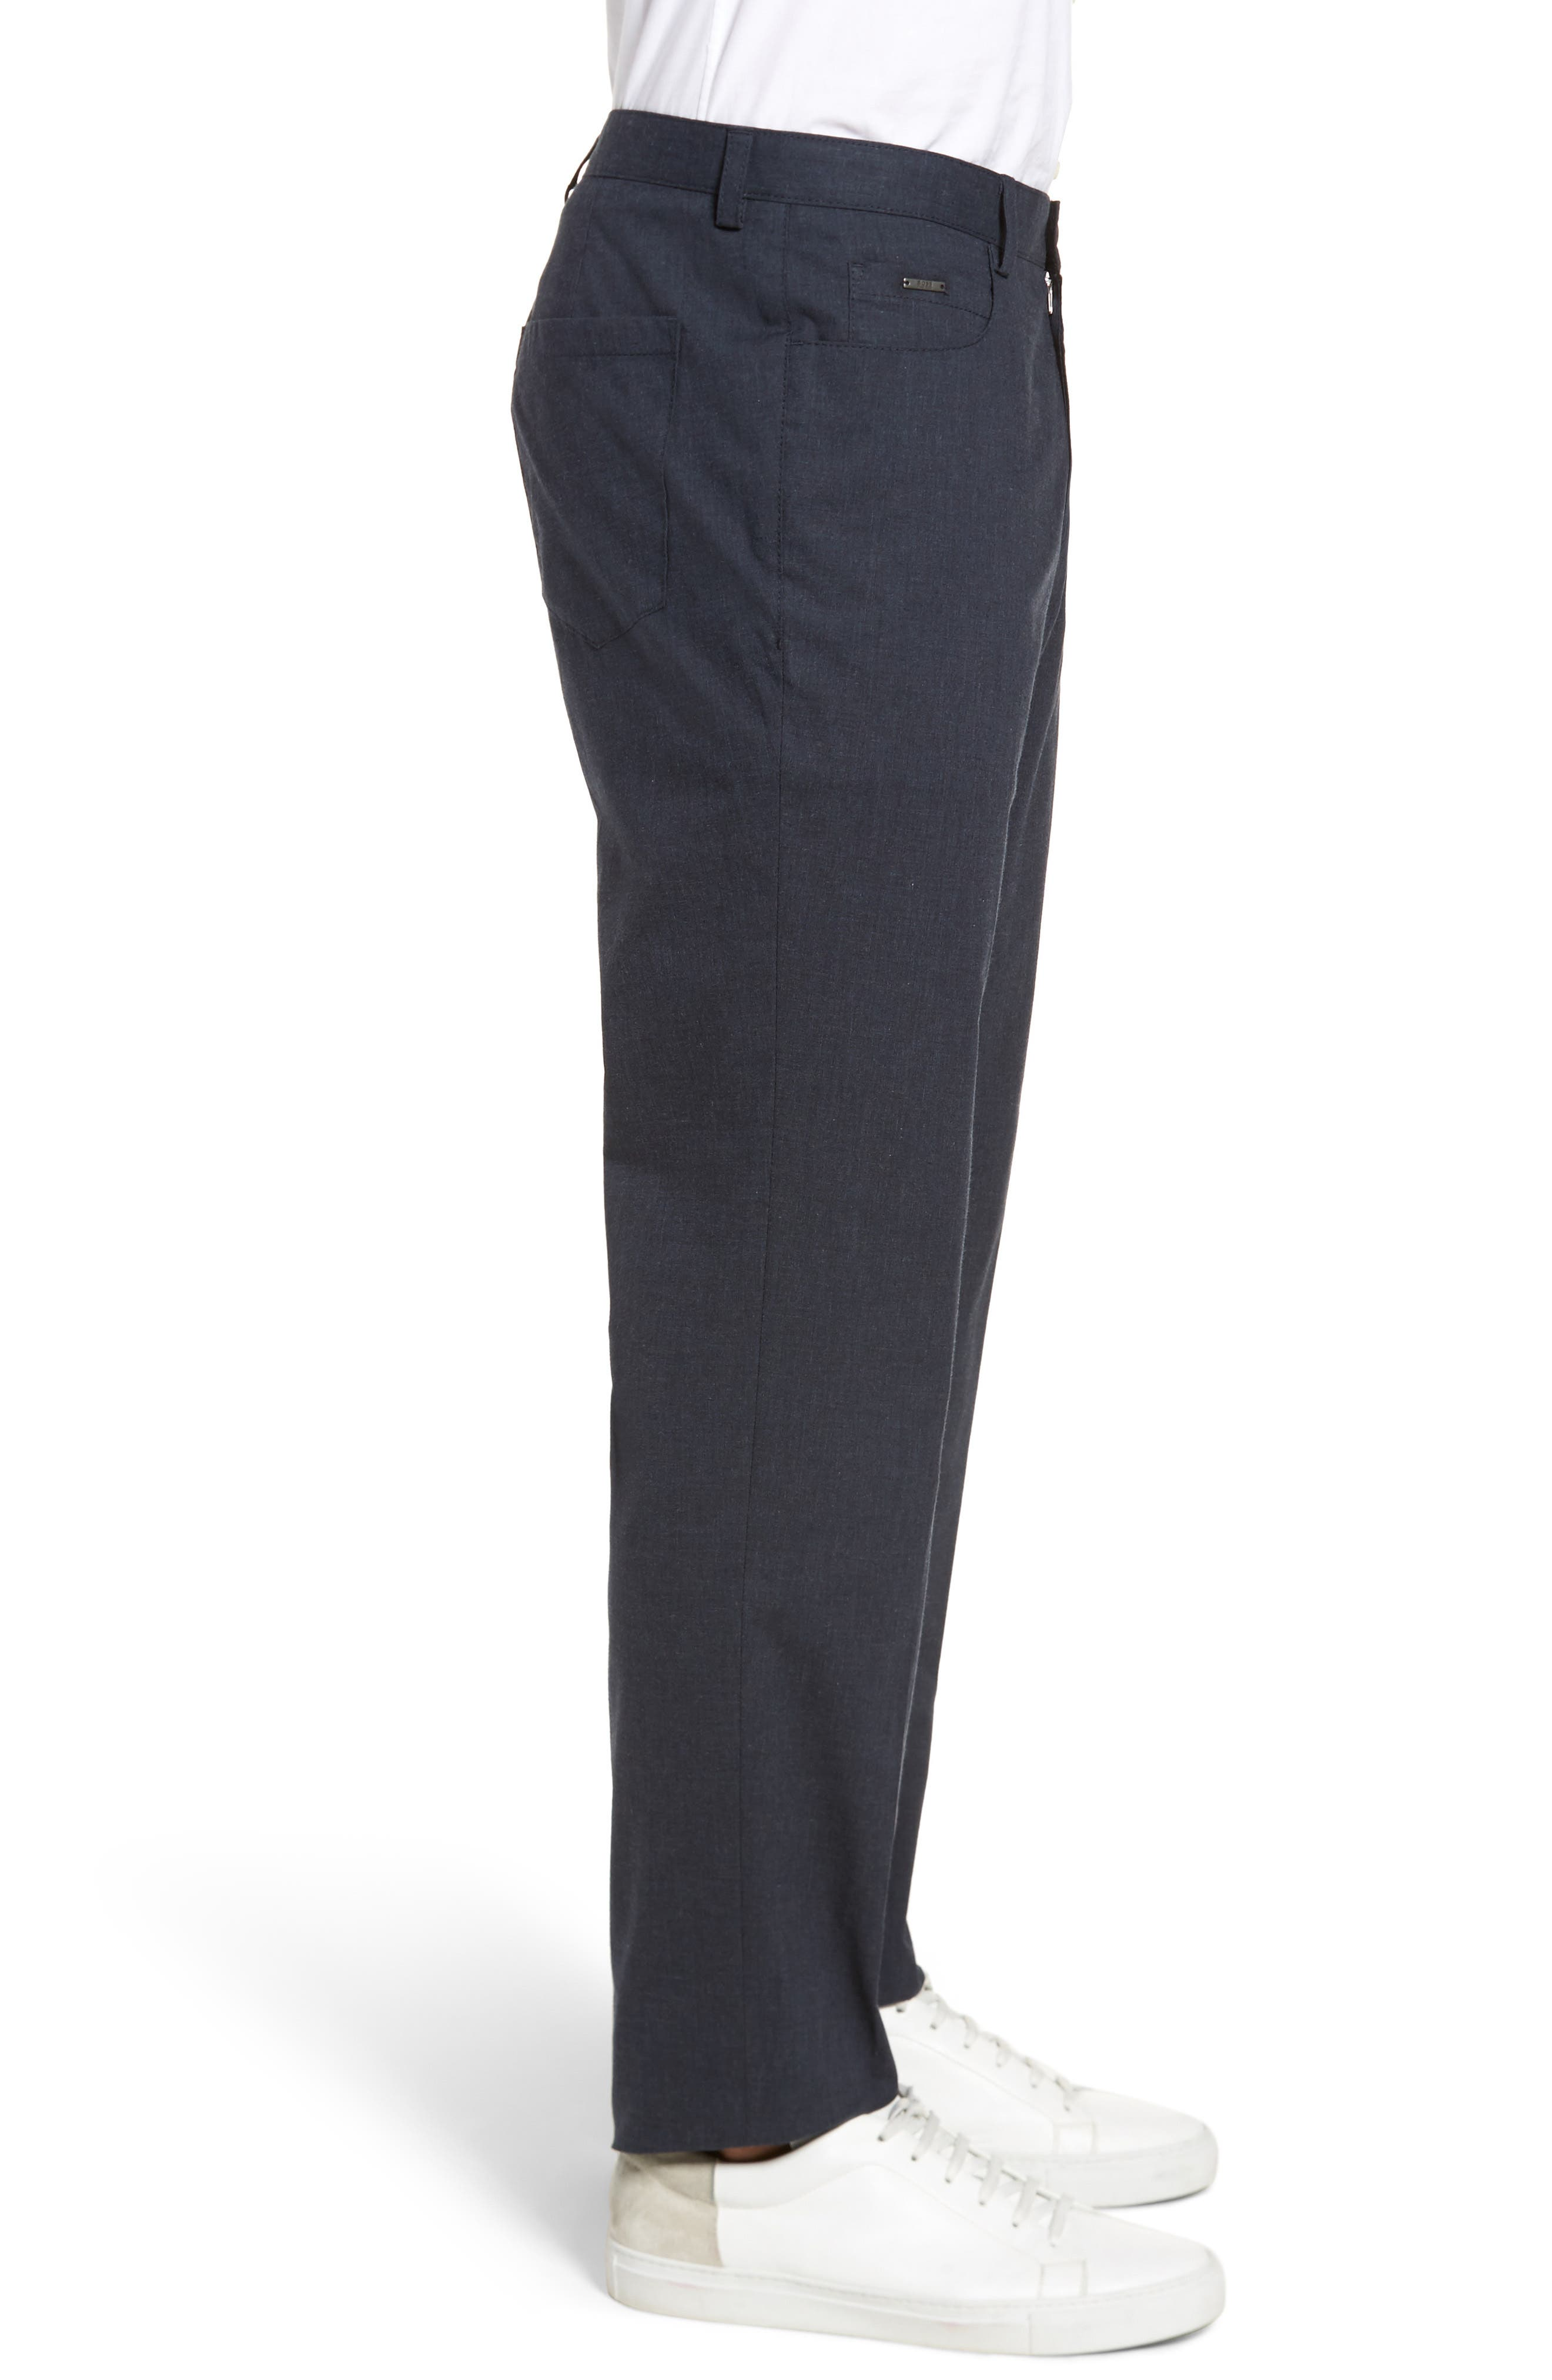 Gaetano Flat Front Stretch Solid Cotton Trousers,                             Alternate thumbnail 3, color,                             DARK GREY